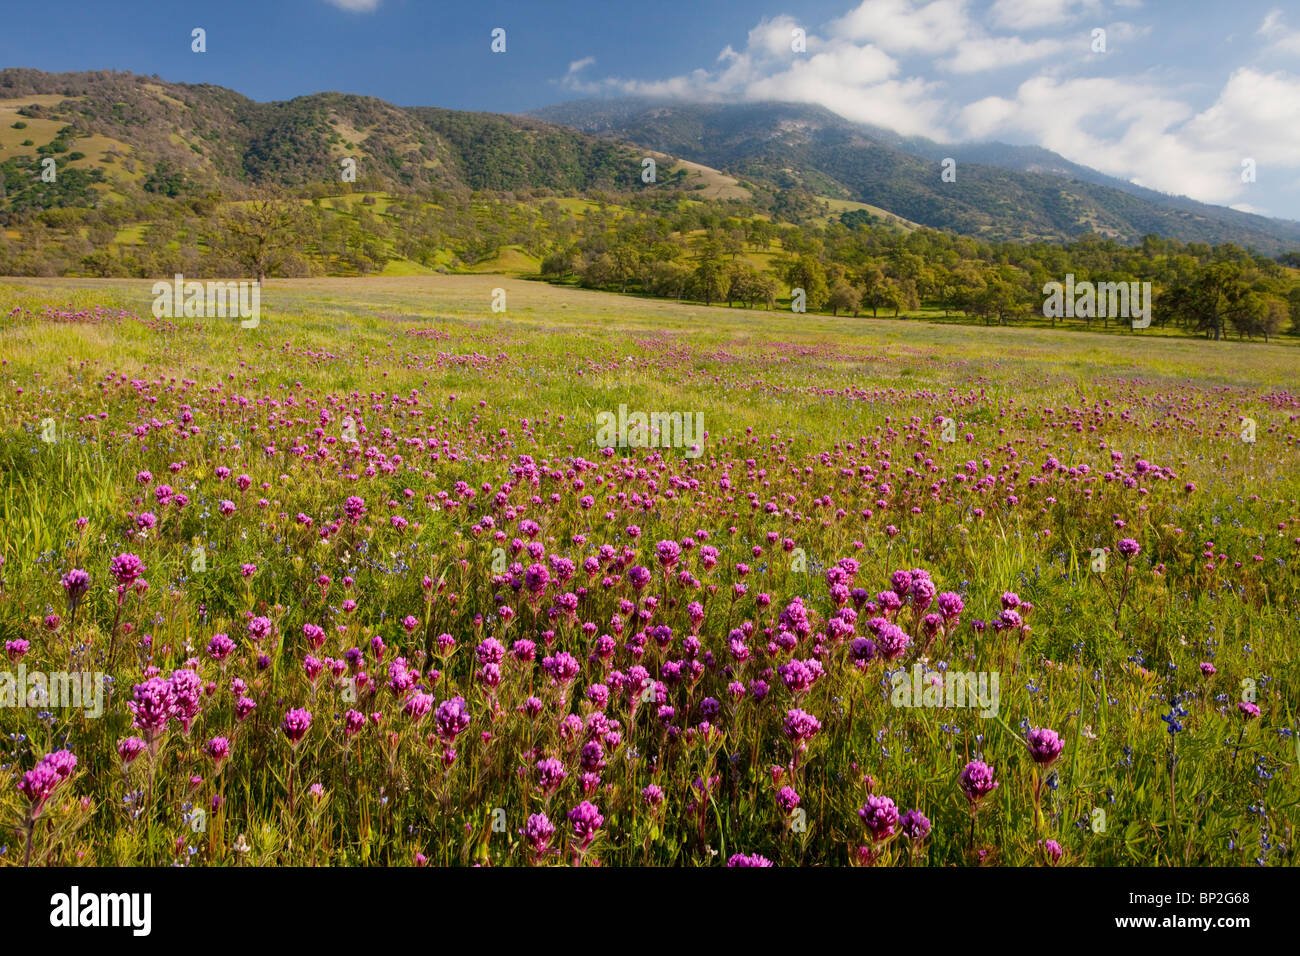 Flowery grassland with owl clover on the slopes of the Tehatchapi Mountains near Arvin, south California. - Stock Image